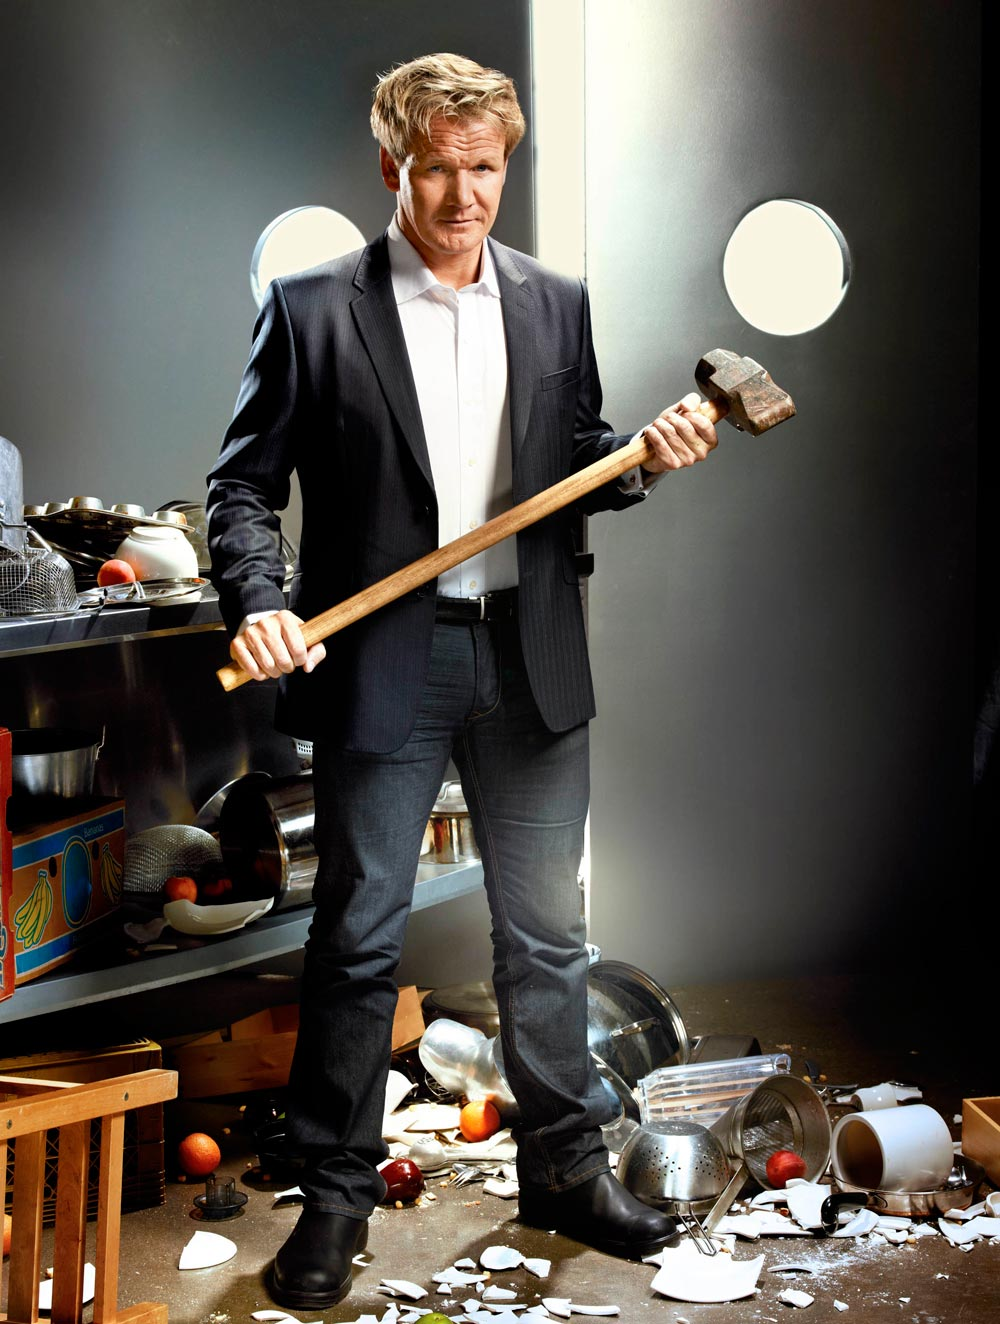 Gordon Ramsay Photo 27 Of 32 Pics Wallpaper Photo